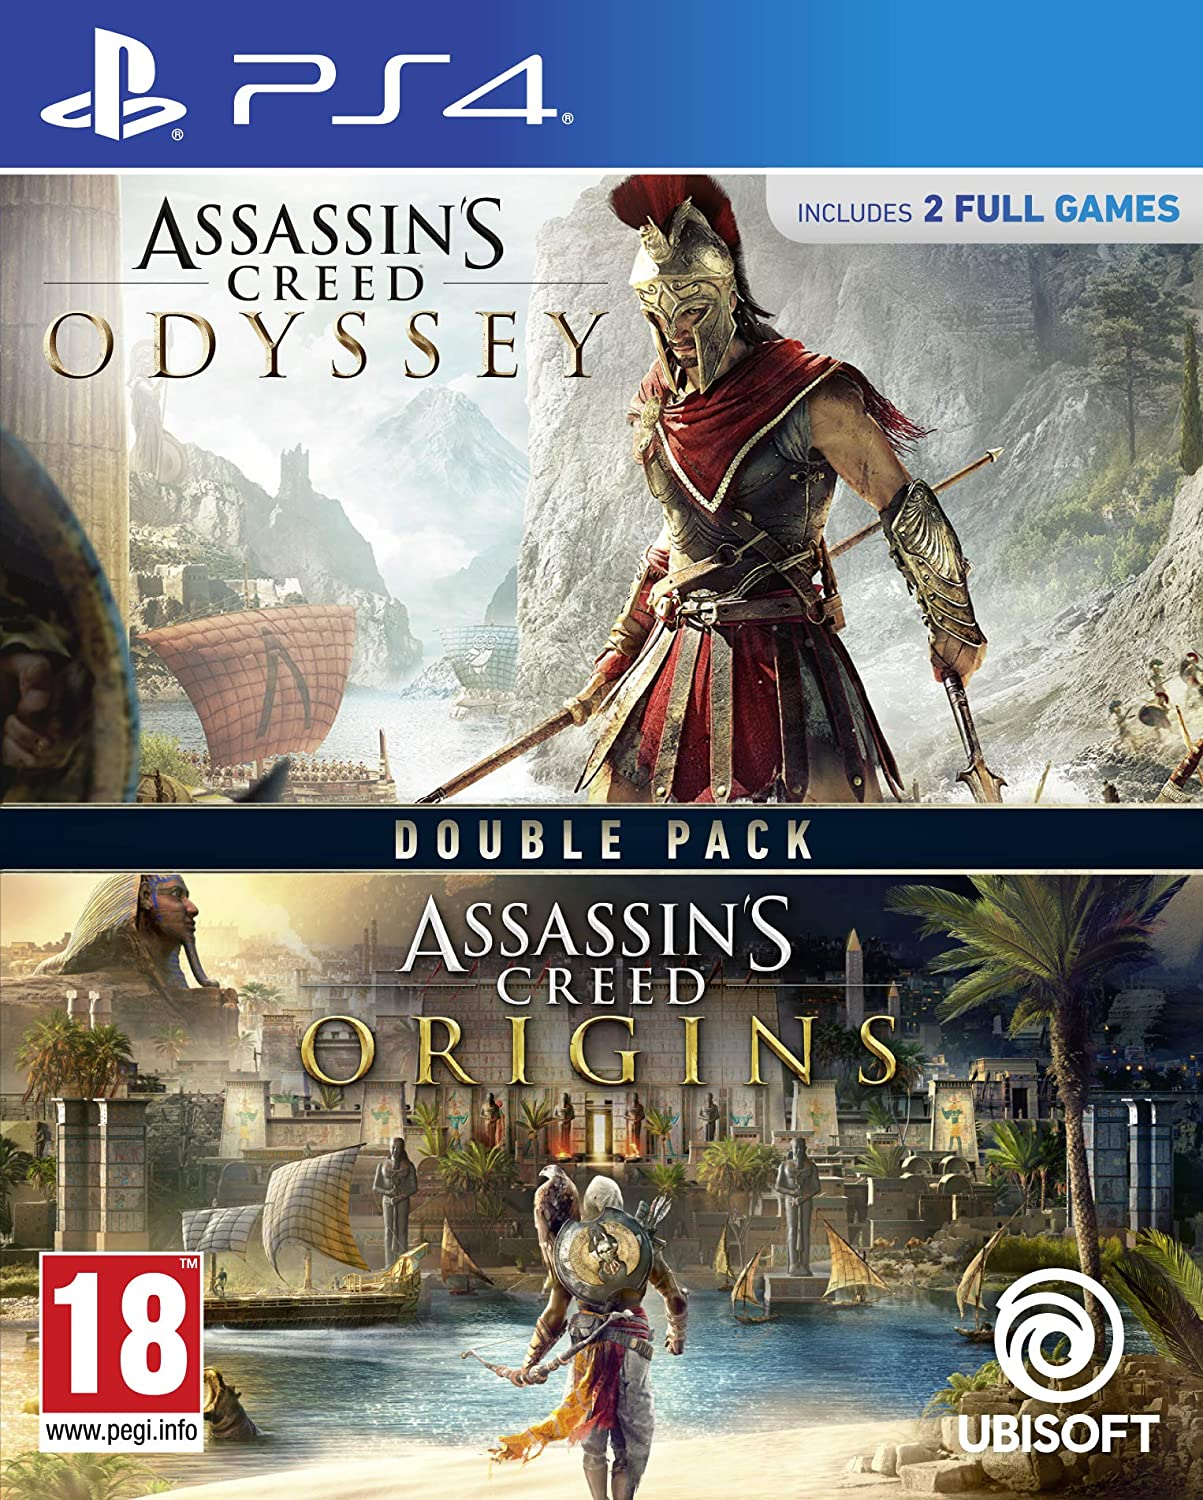 Assassins Creed Origins + Odyssey Double Pack - PlayStation 4 [Importación inglesa]: Amazon.es: Videojuegos